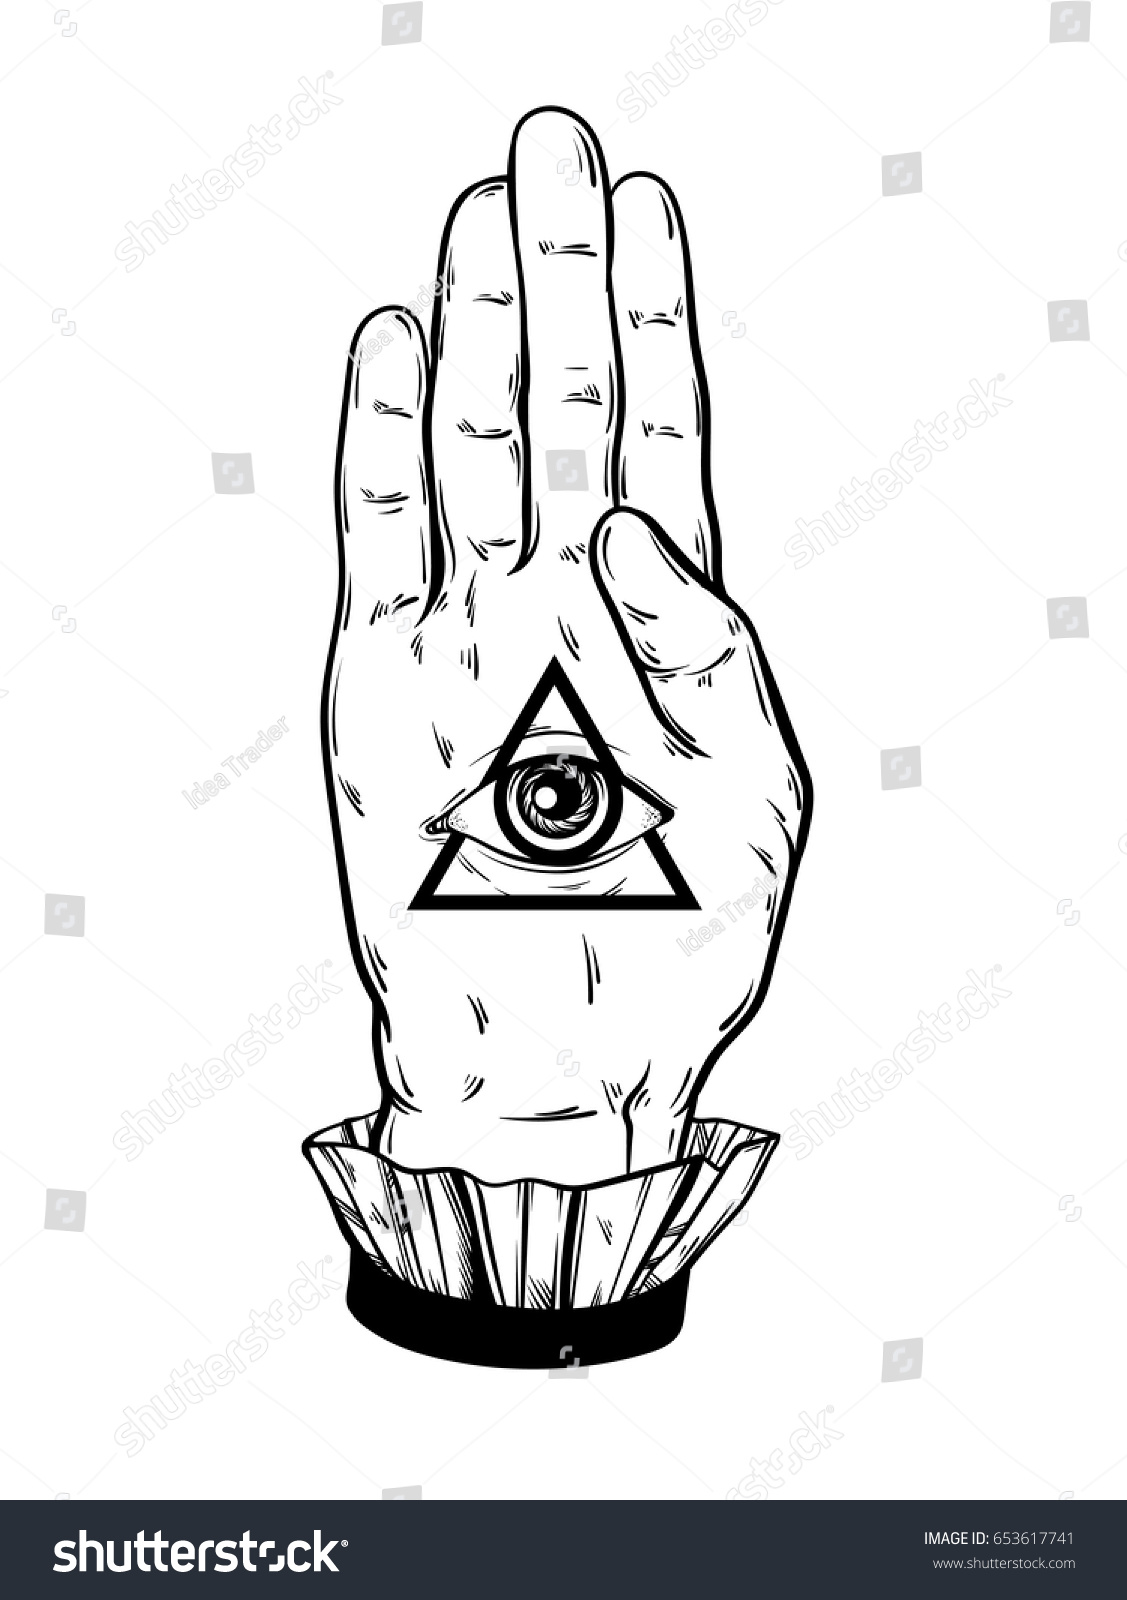 Vector hand drawn illustration hand witch stock vector 653617741 vector hand drawn illustration of hand of witch all seeing eye pyramid symbol tattoo biocorpaavc